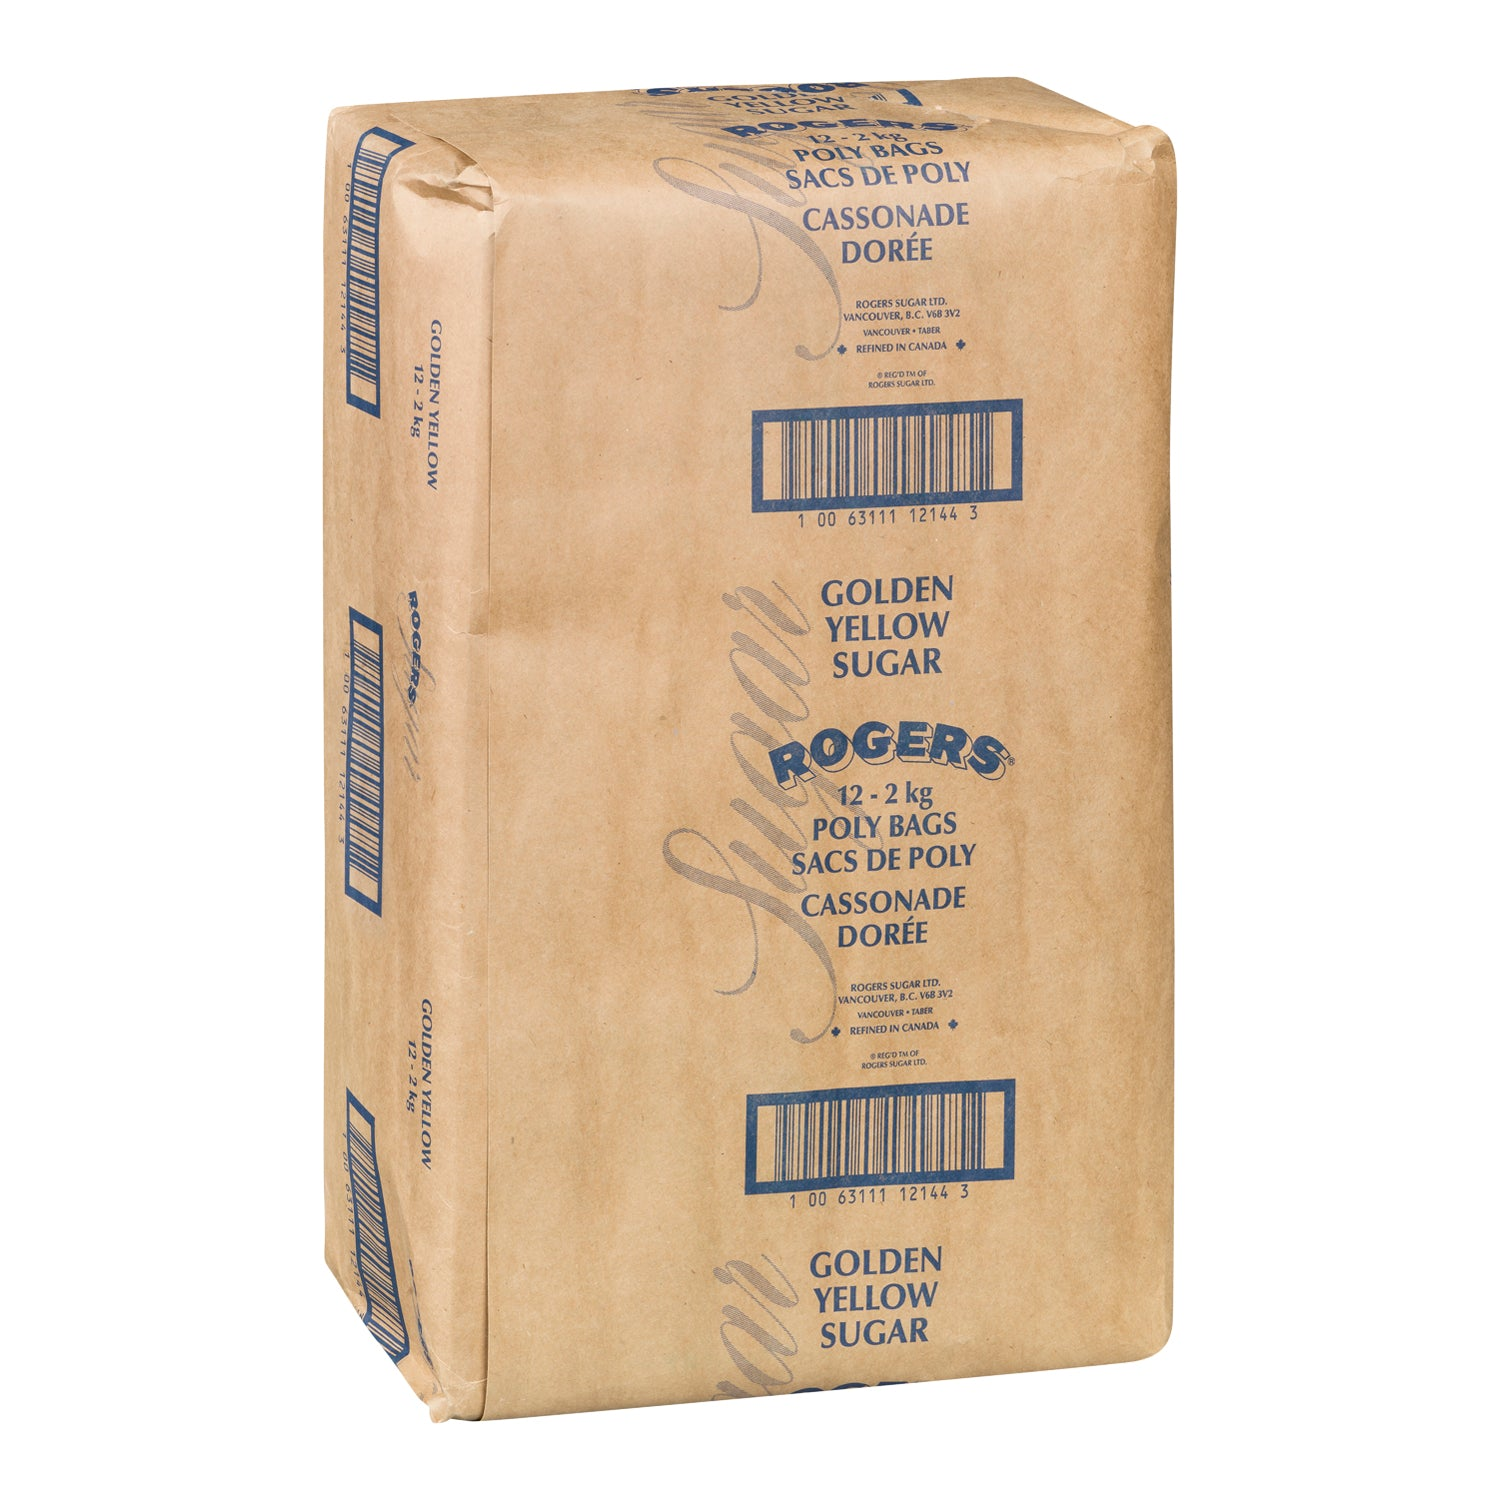 Rogers Golden Yellow Brown Sugar 2 kg - 1 Pack [$2.50/kg]